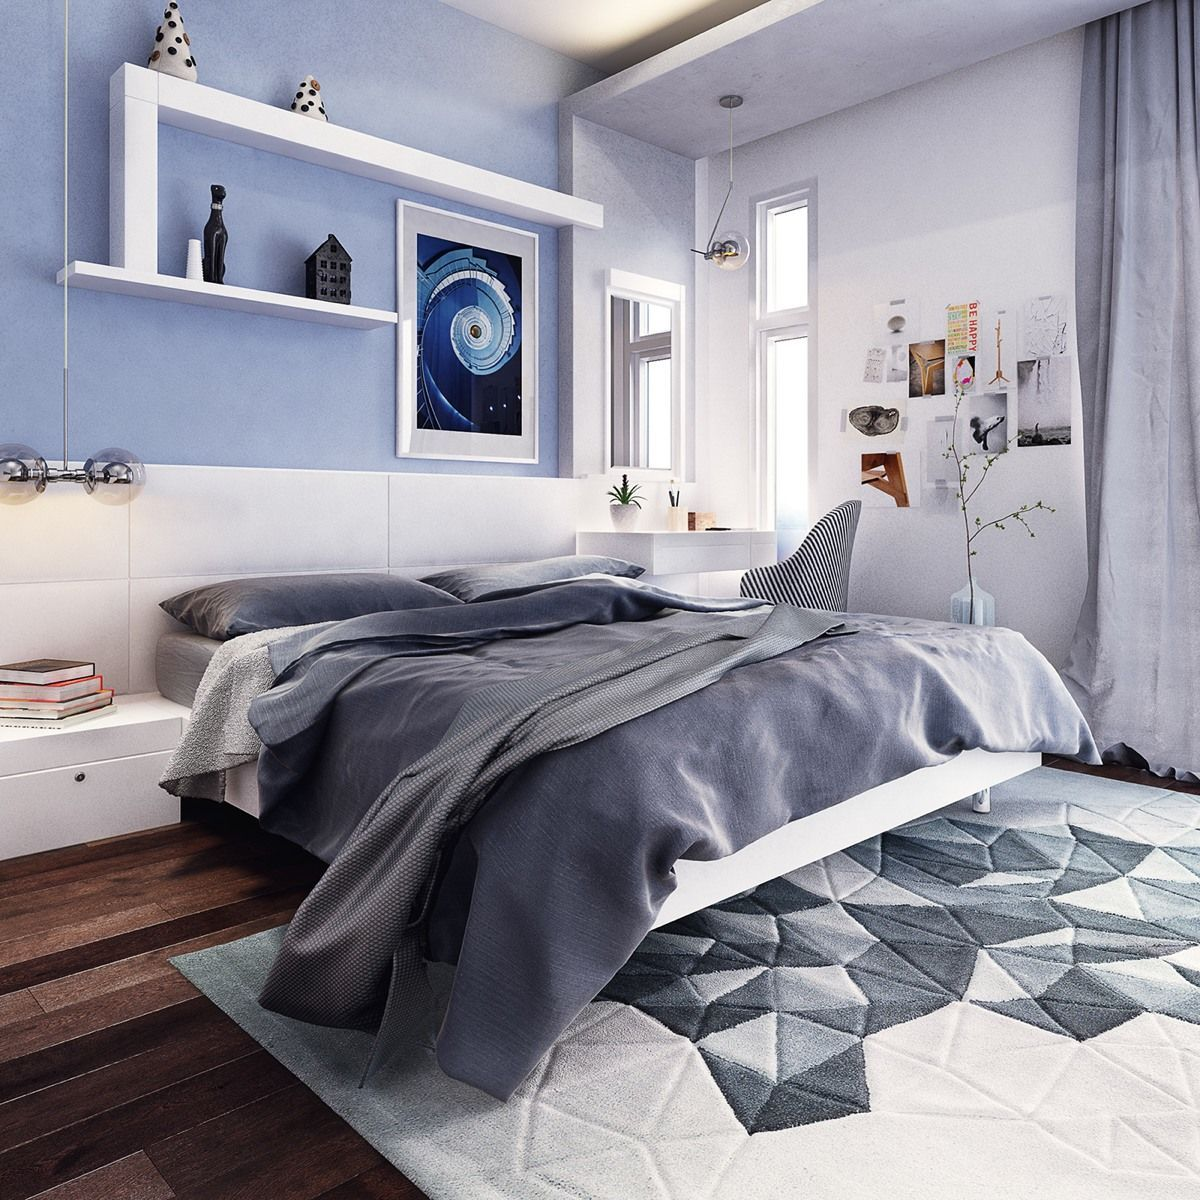 Bedroom inspiration roundup cool unconventional themes also for the rh pinterest